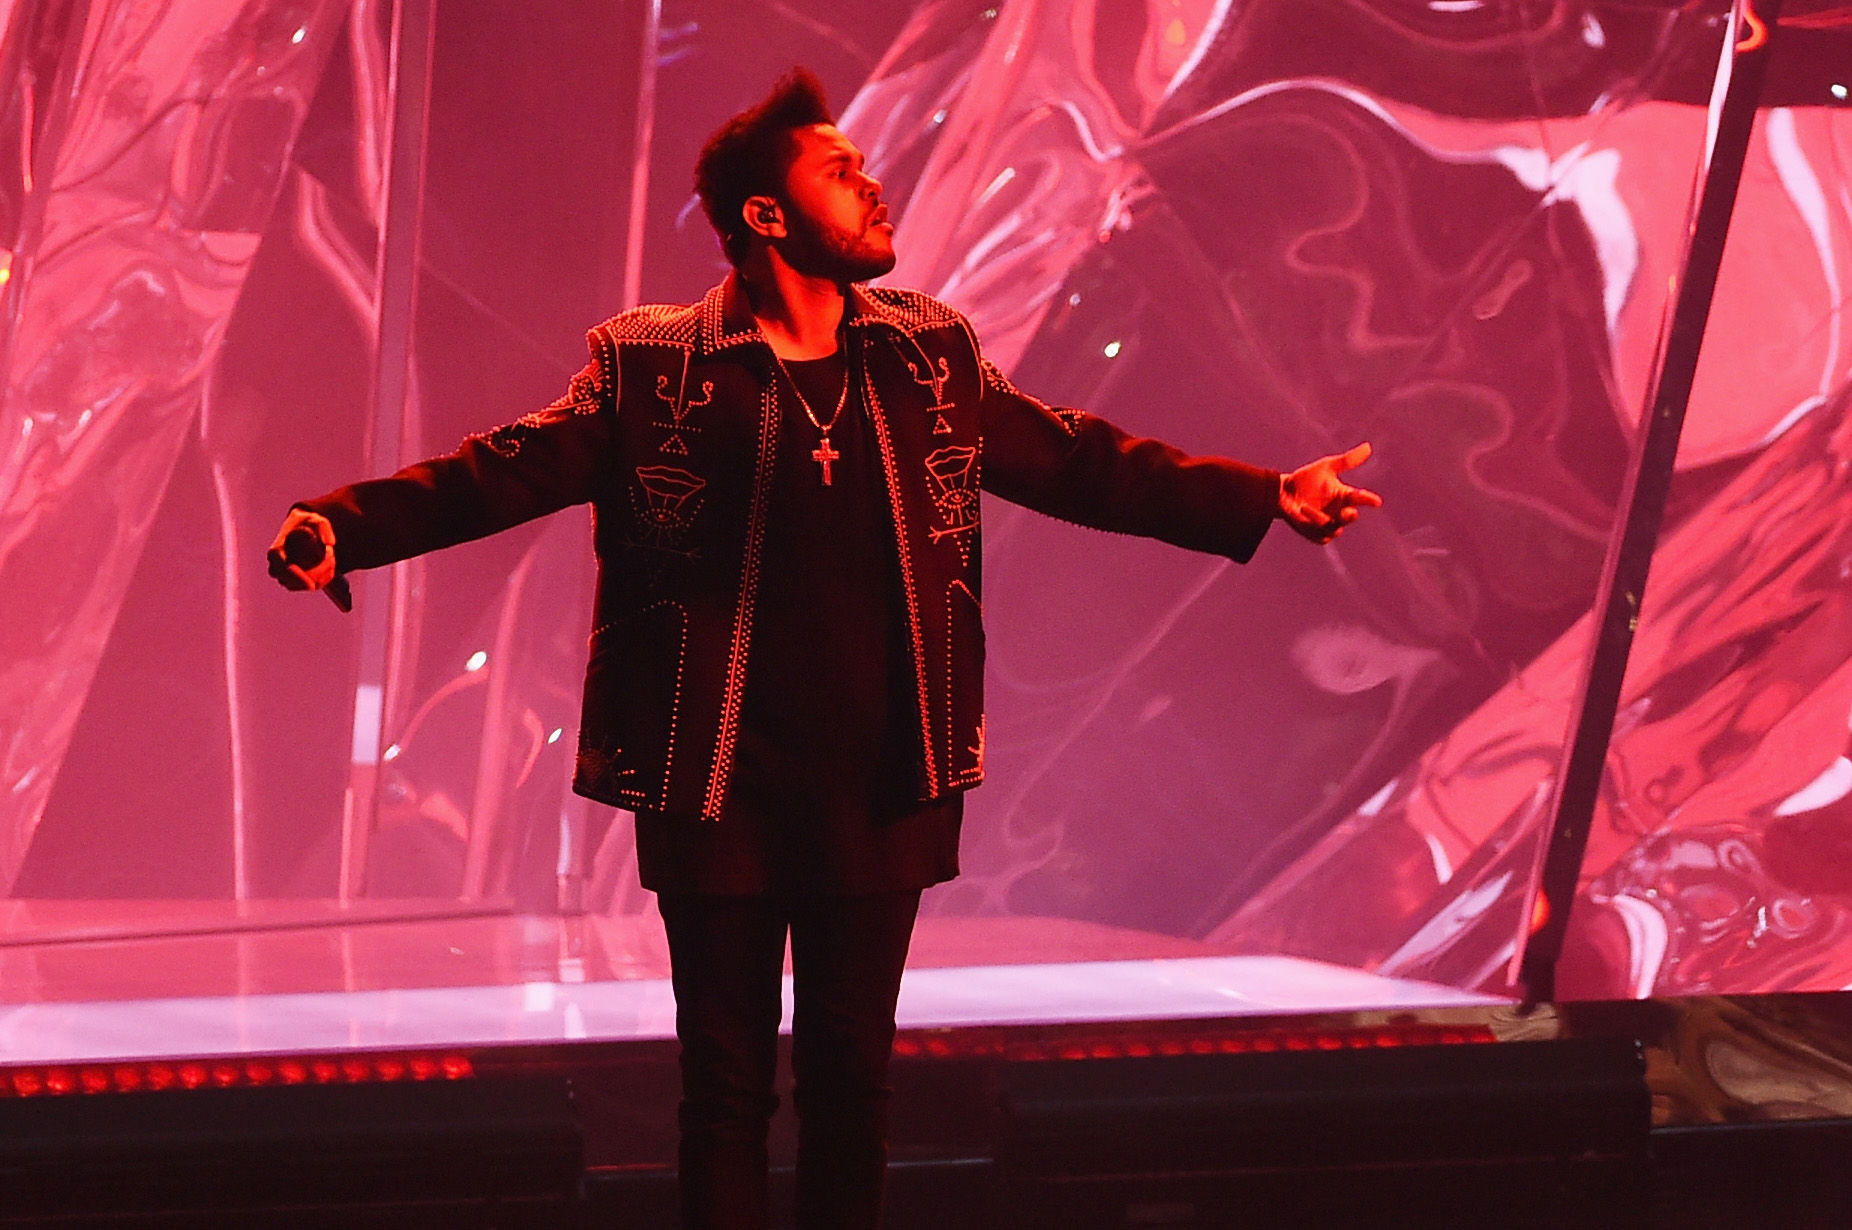 The Weeknd performs during the 2016 American Music Awards on November 20, 2016 in Los Angeles, California. (Photo by Kevin Winter/Getty Images)